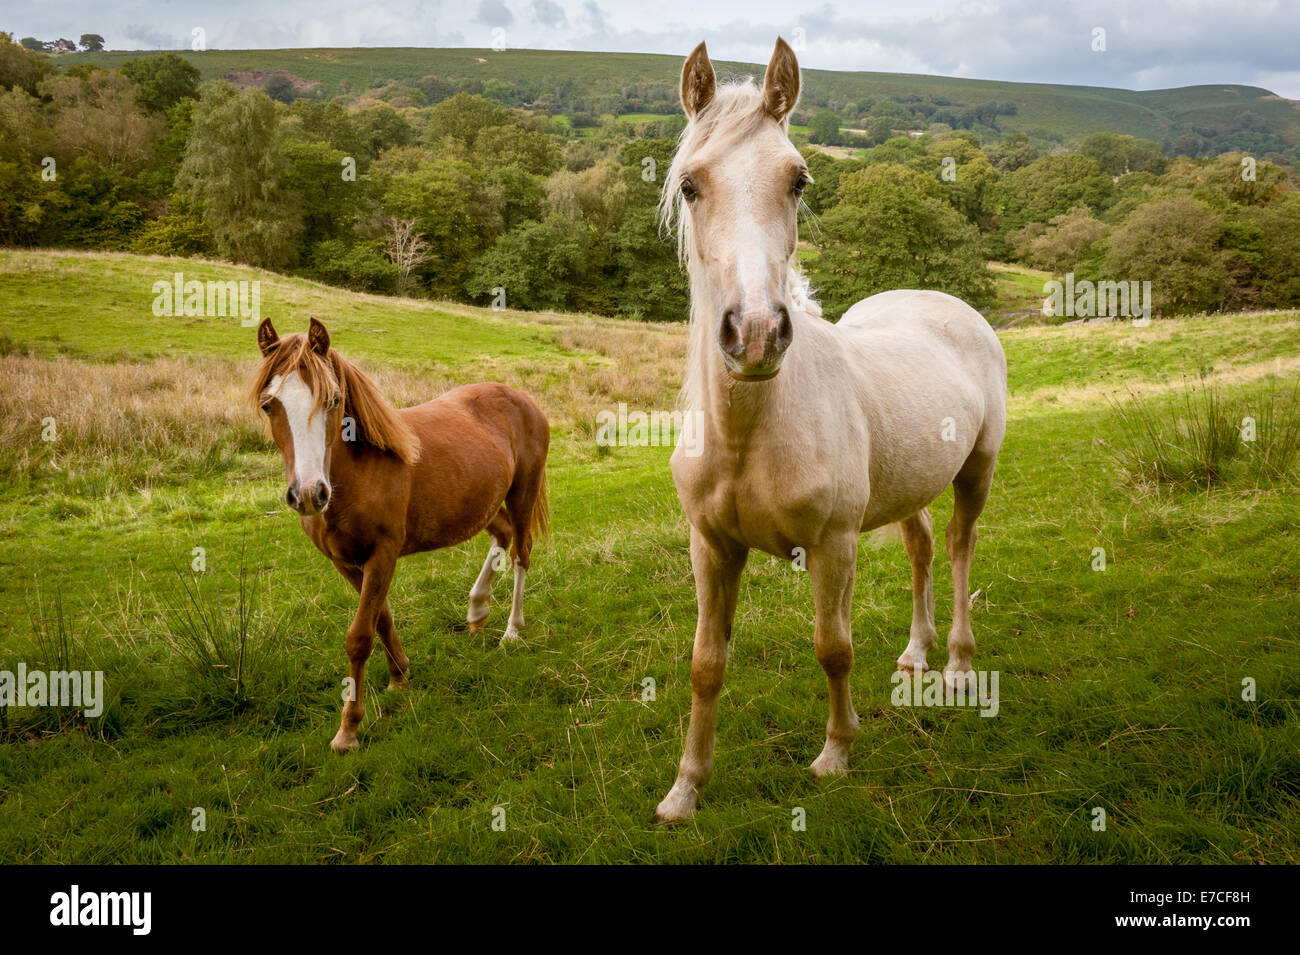 Two_ponies_in_a_South_Wales_valley_near_